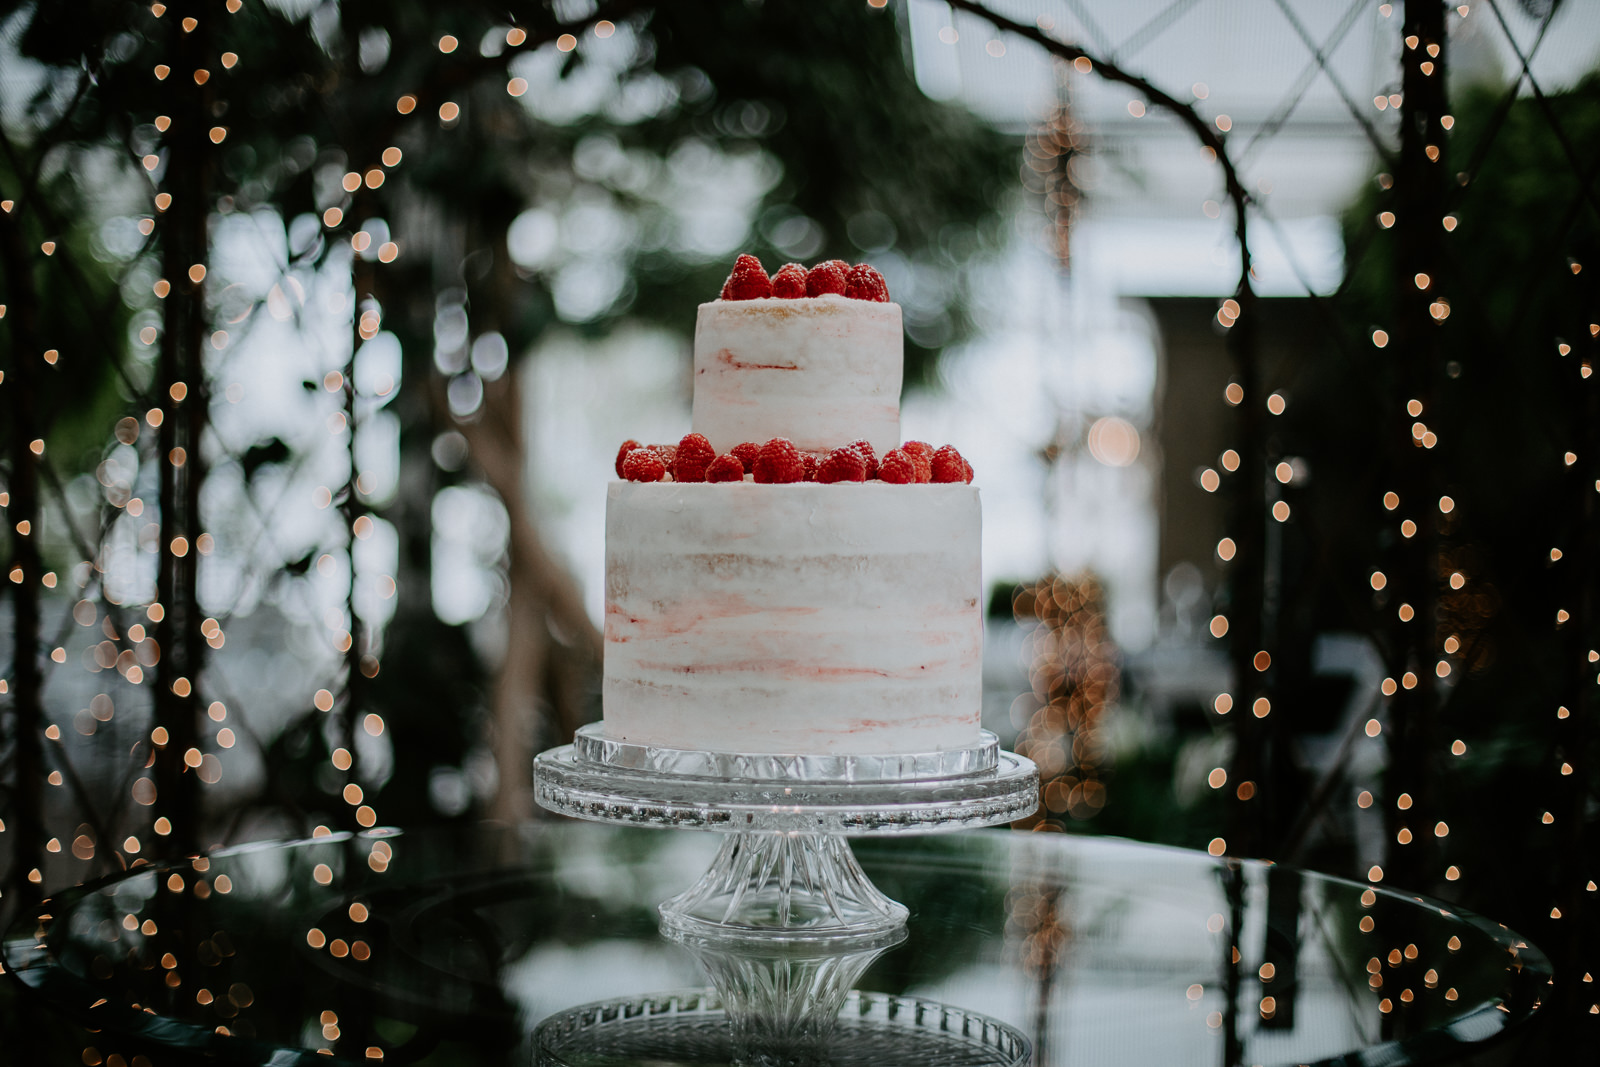 Raspberry and vanilla two-tiered wedding cake on pedestal